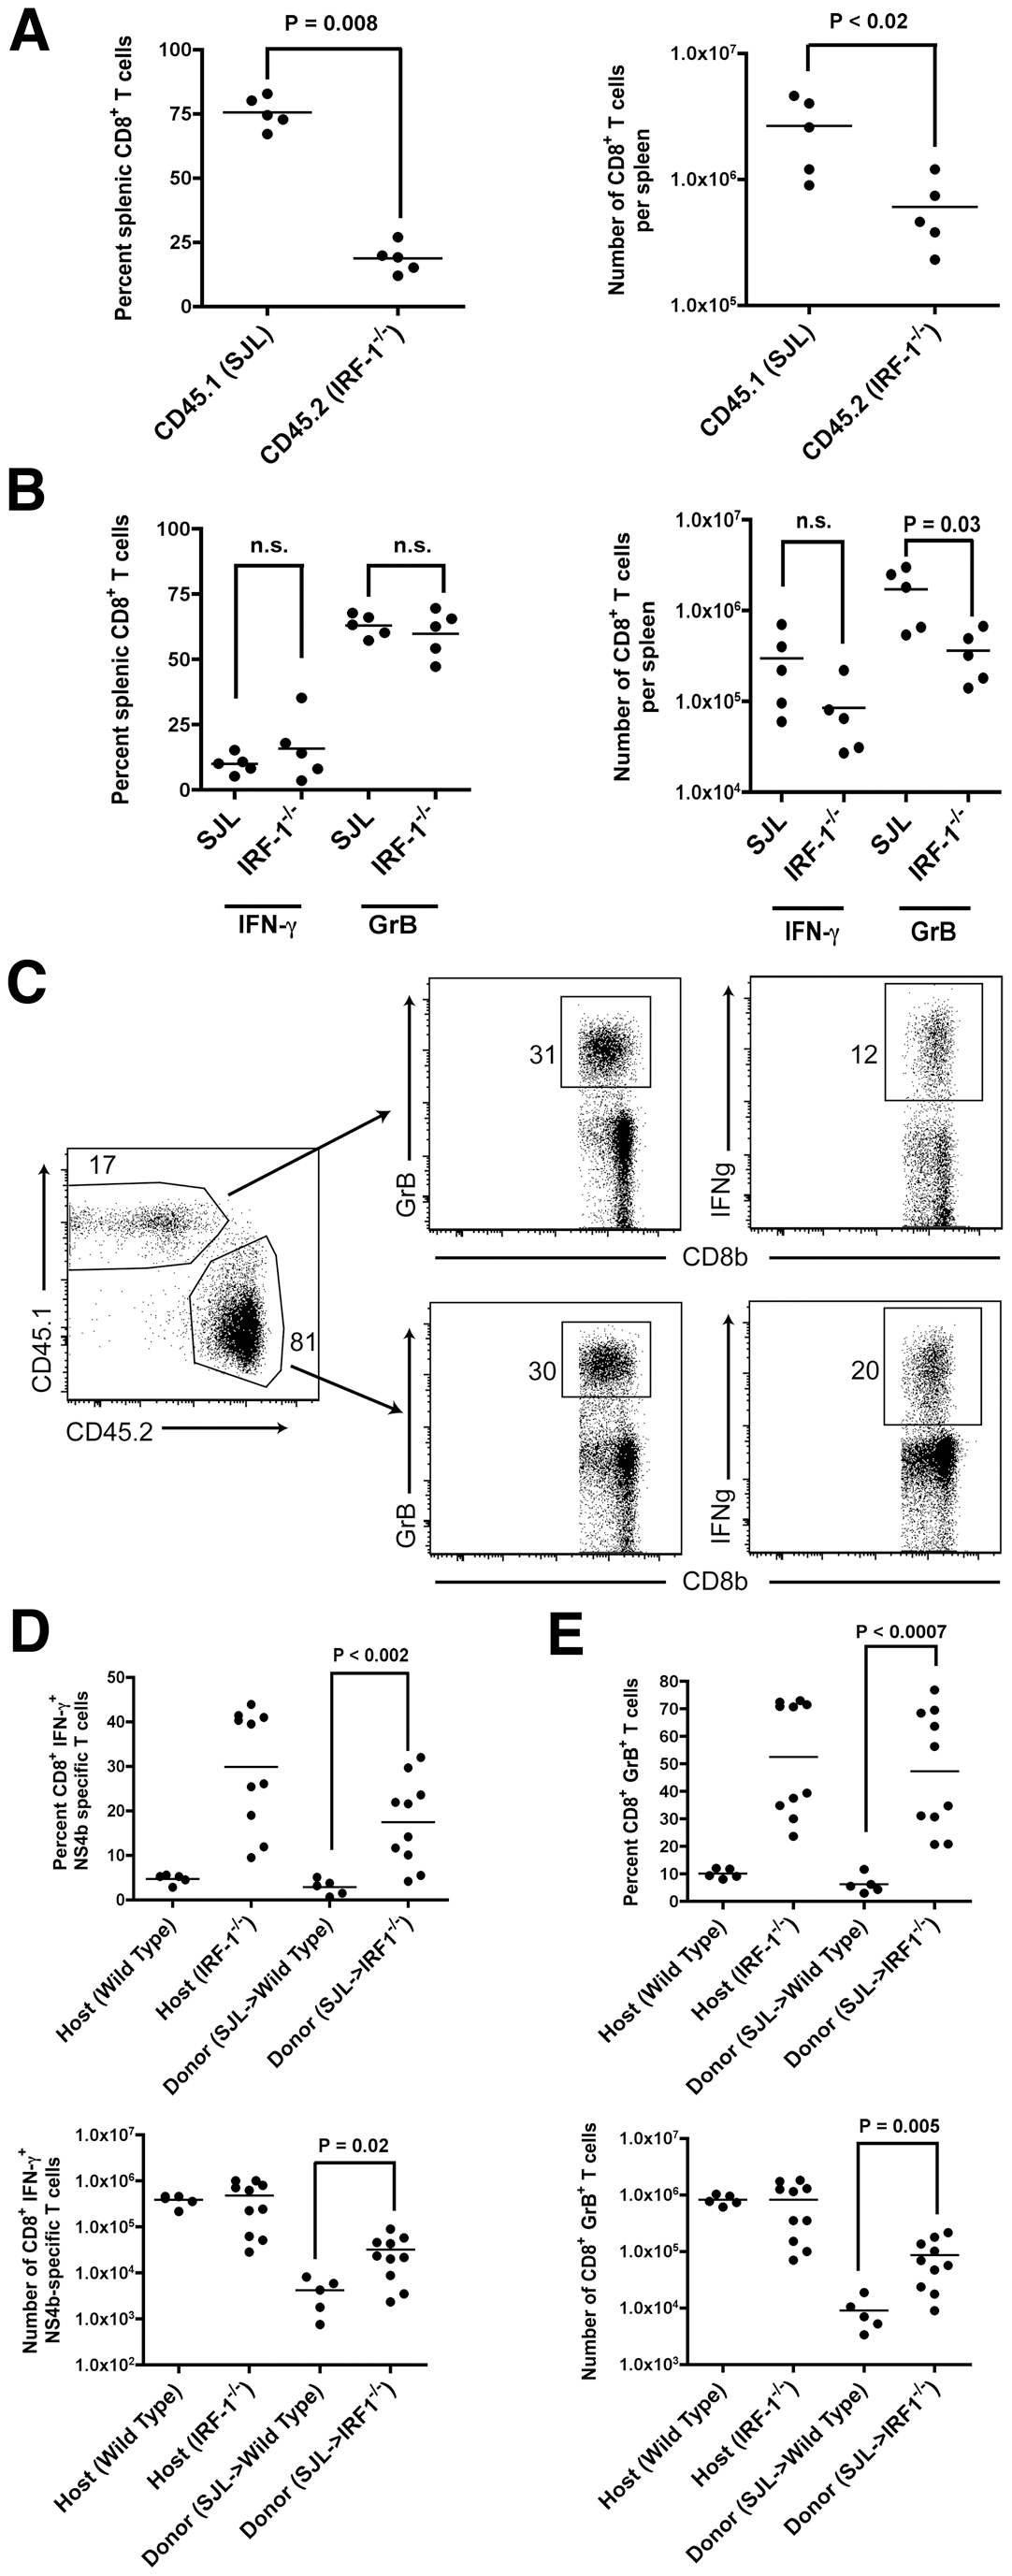 Adoptive transfer experiments identify cell-intrinsic and cell-extrinsic effects of IRF-1 on CD8<sup>+</sup> T cell expansion.